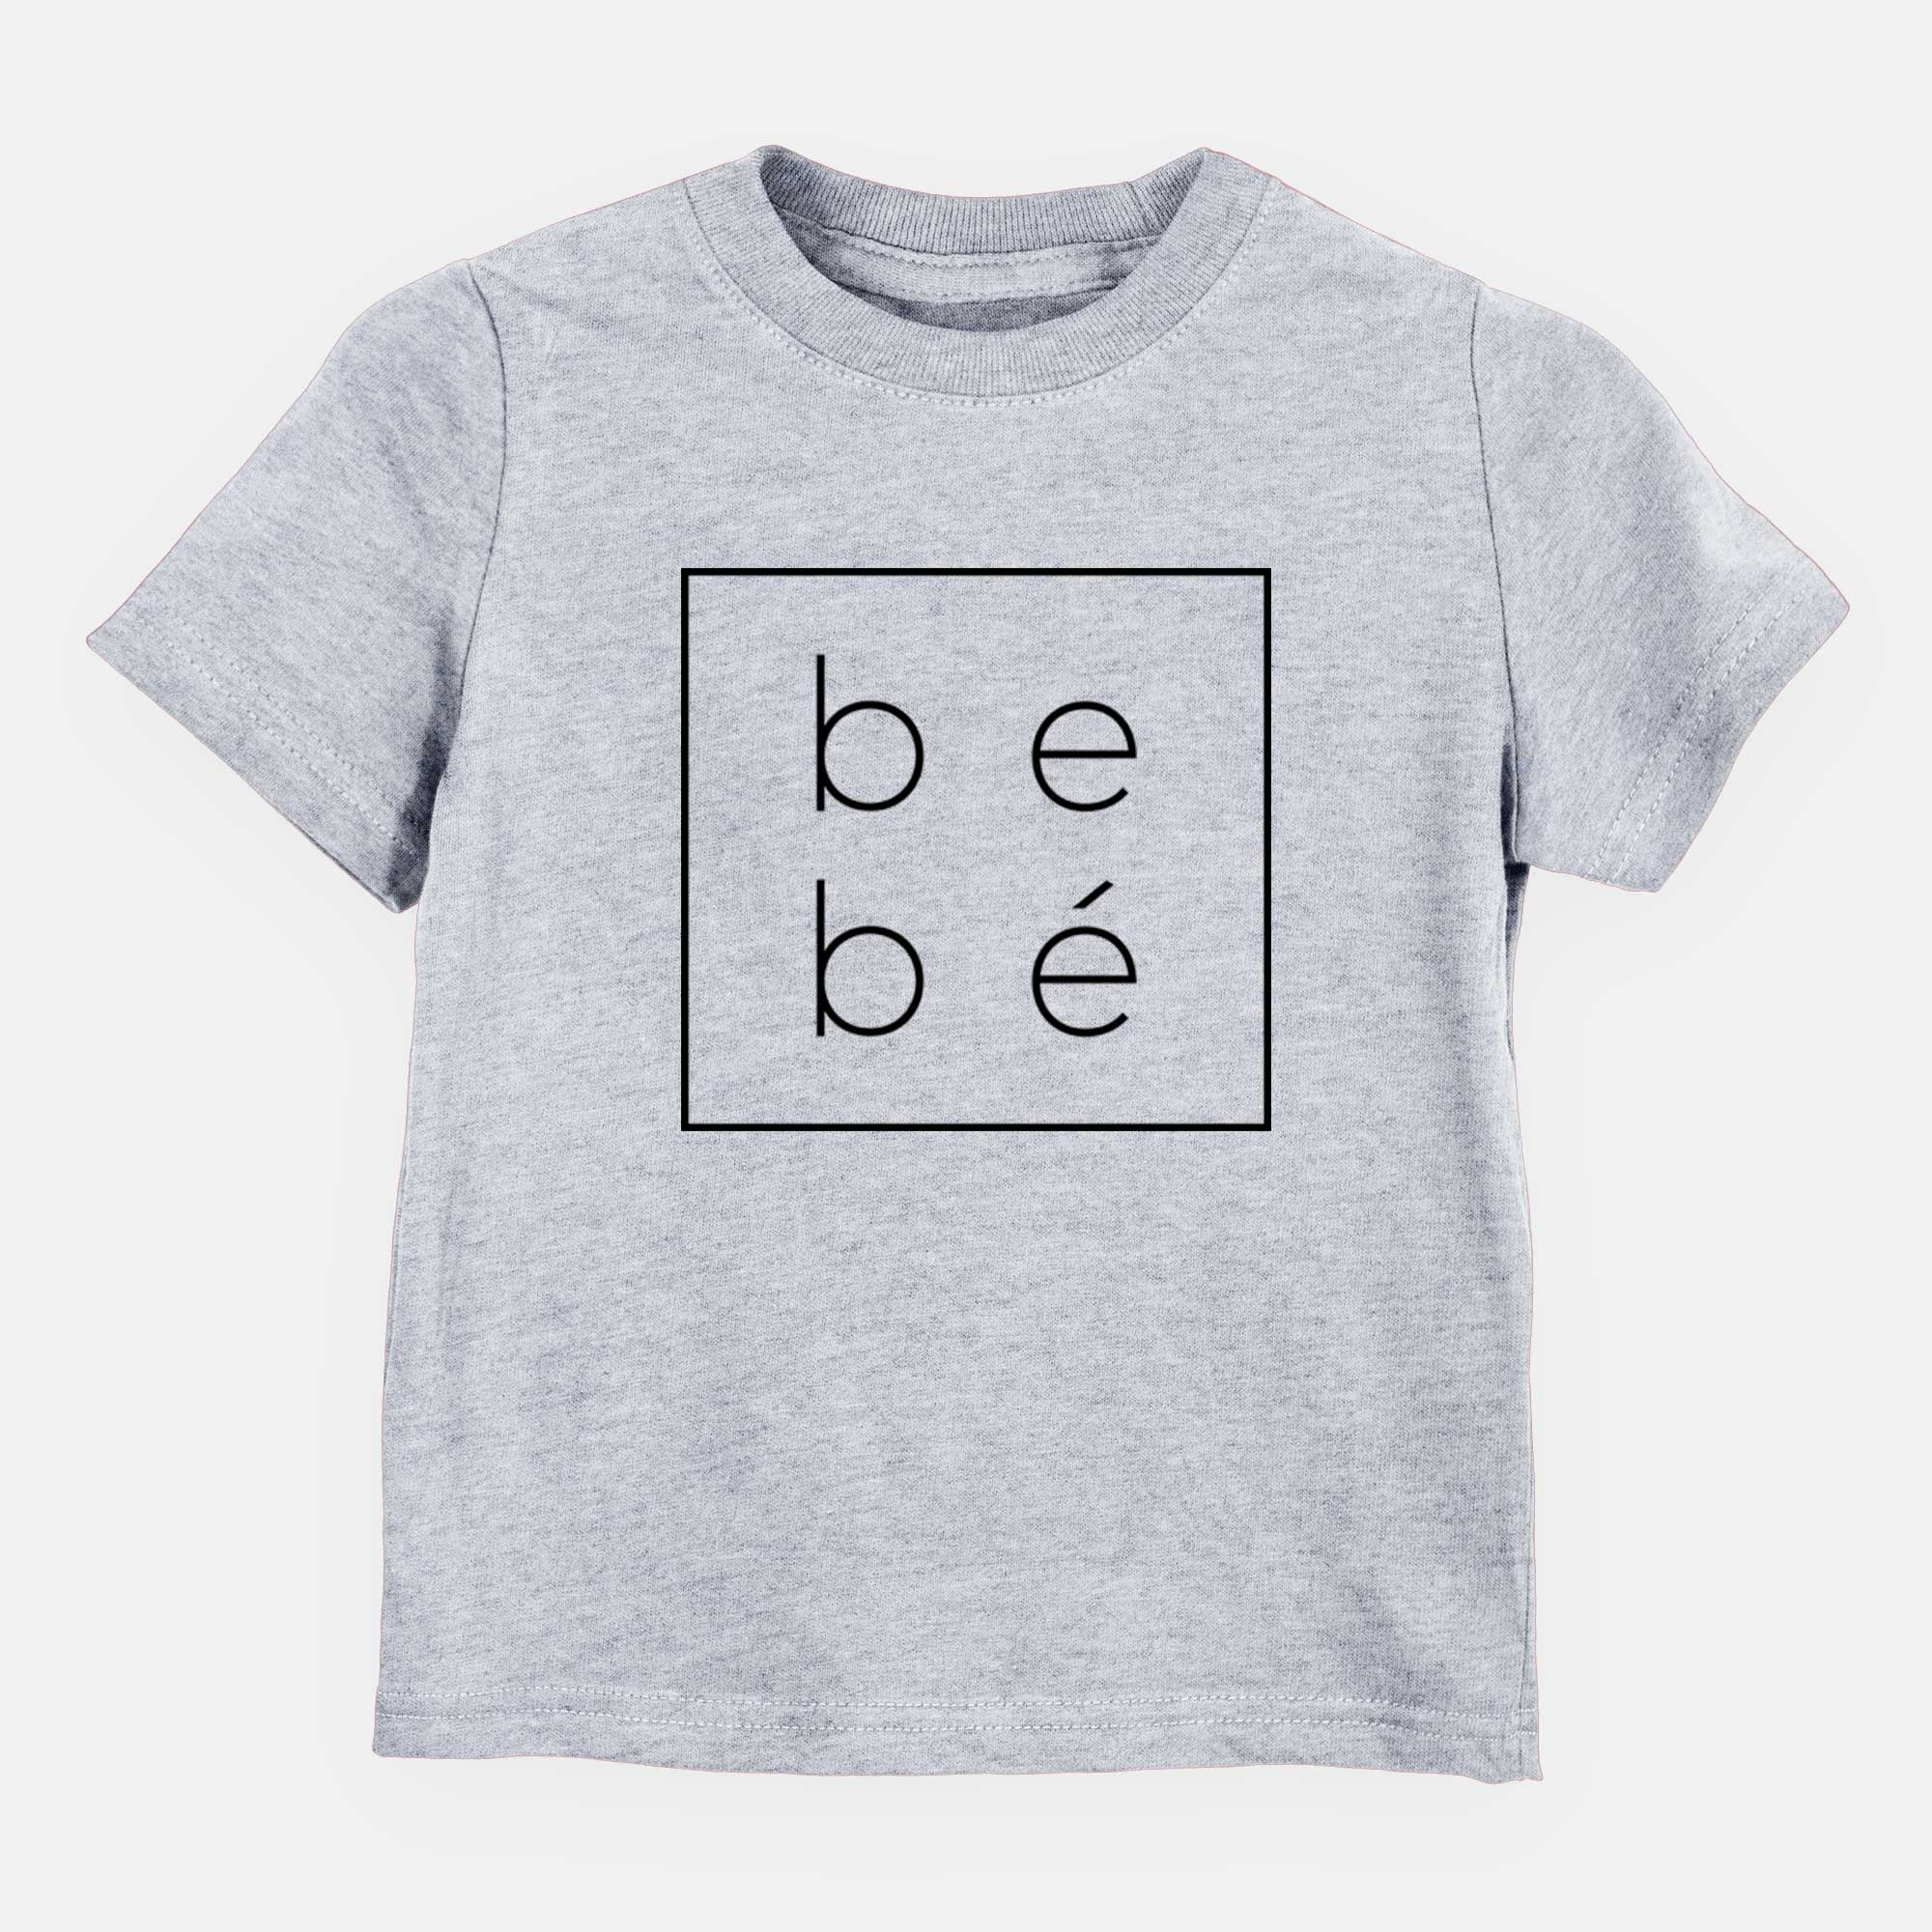 bebe Spanish - Boxed Collection  - Kids/Youth/Toddler Shirt